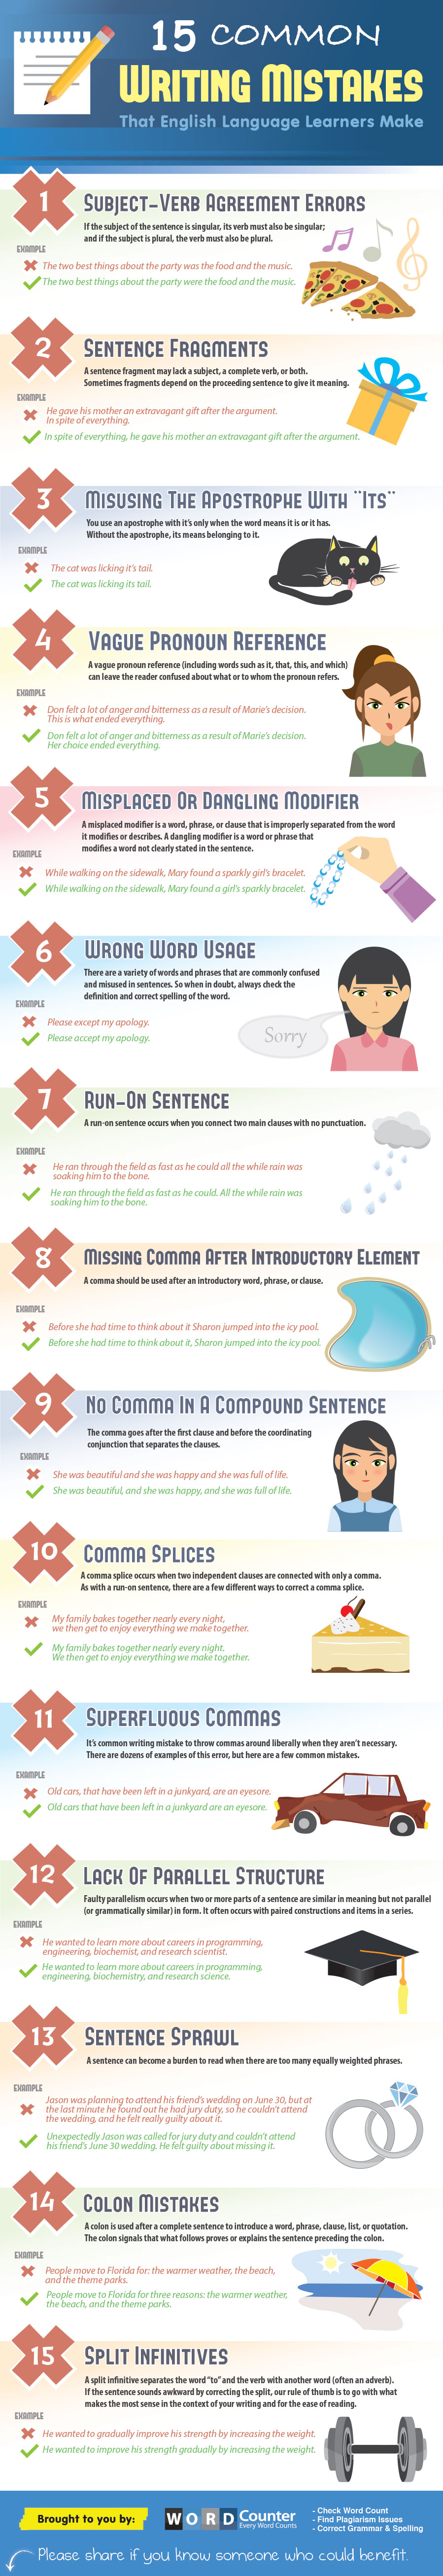 common mistakes that English language learners make